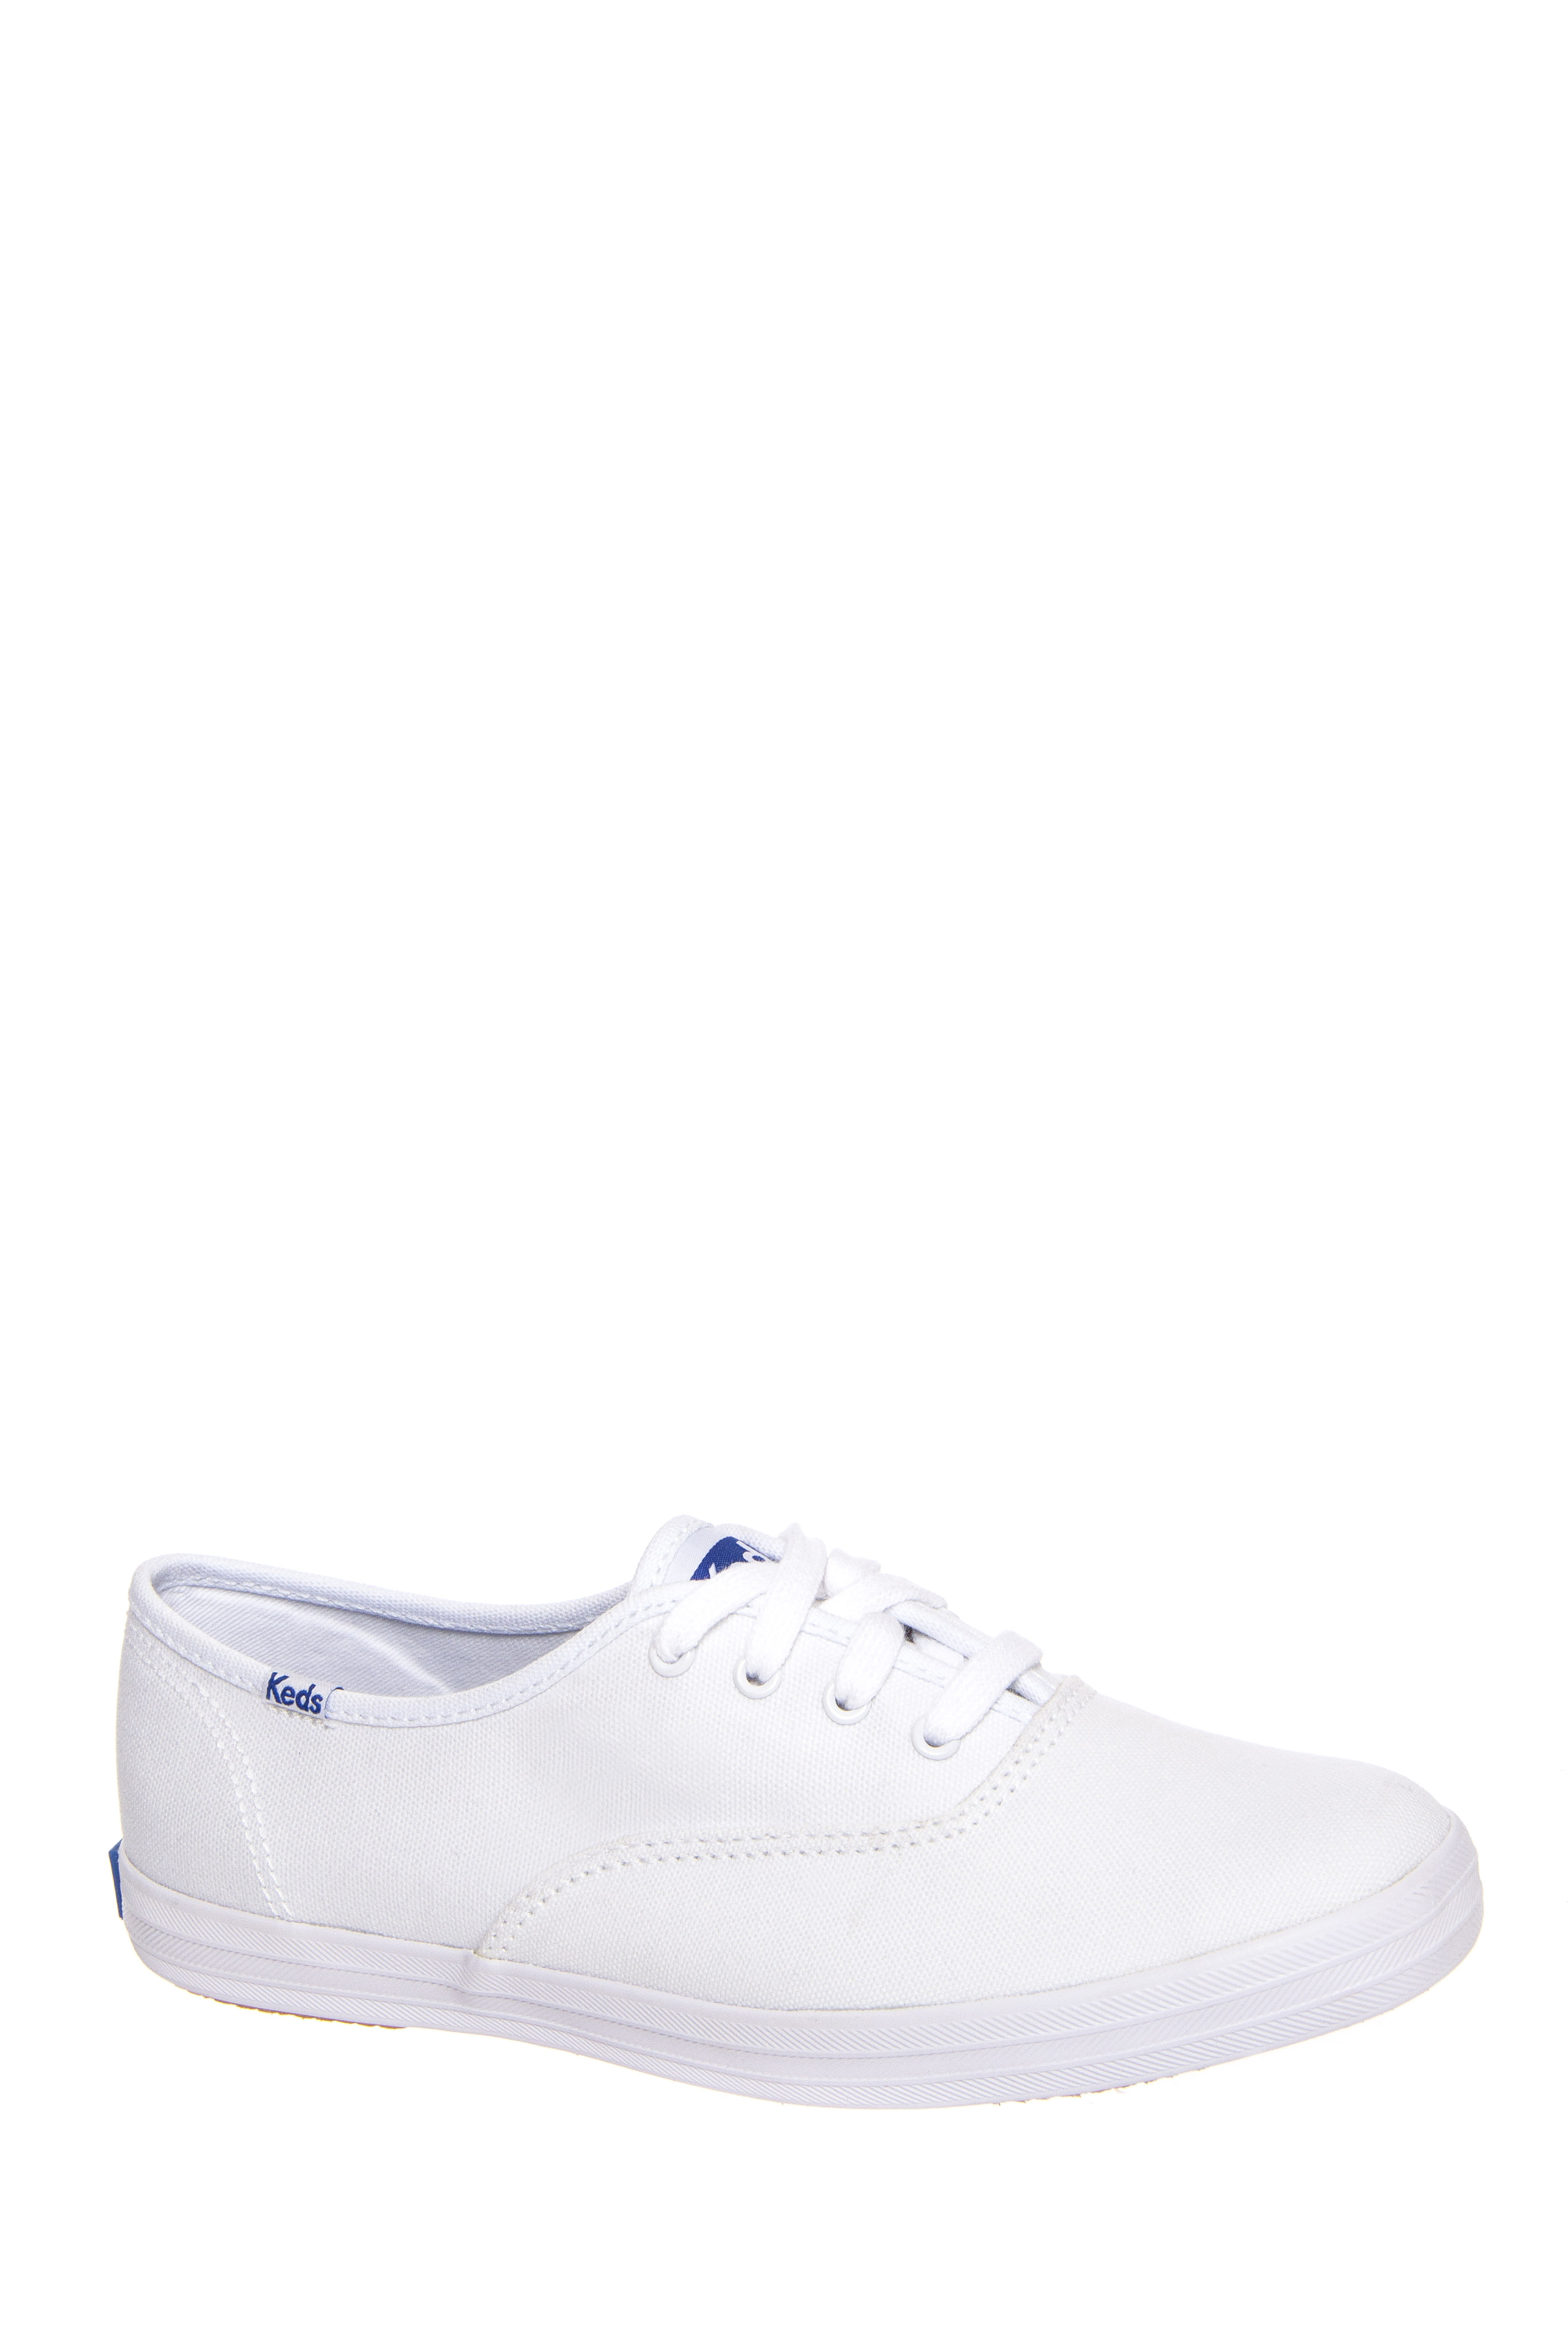 KEDS Champion Low Top Sneakers - White